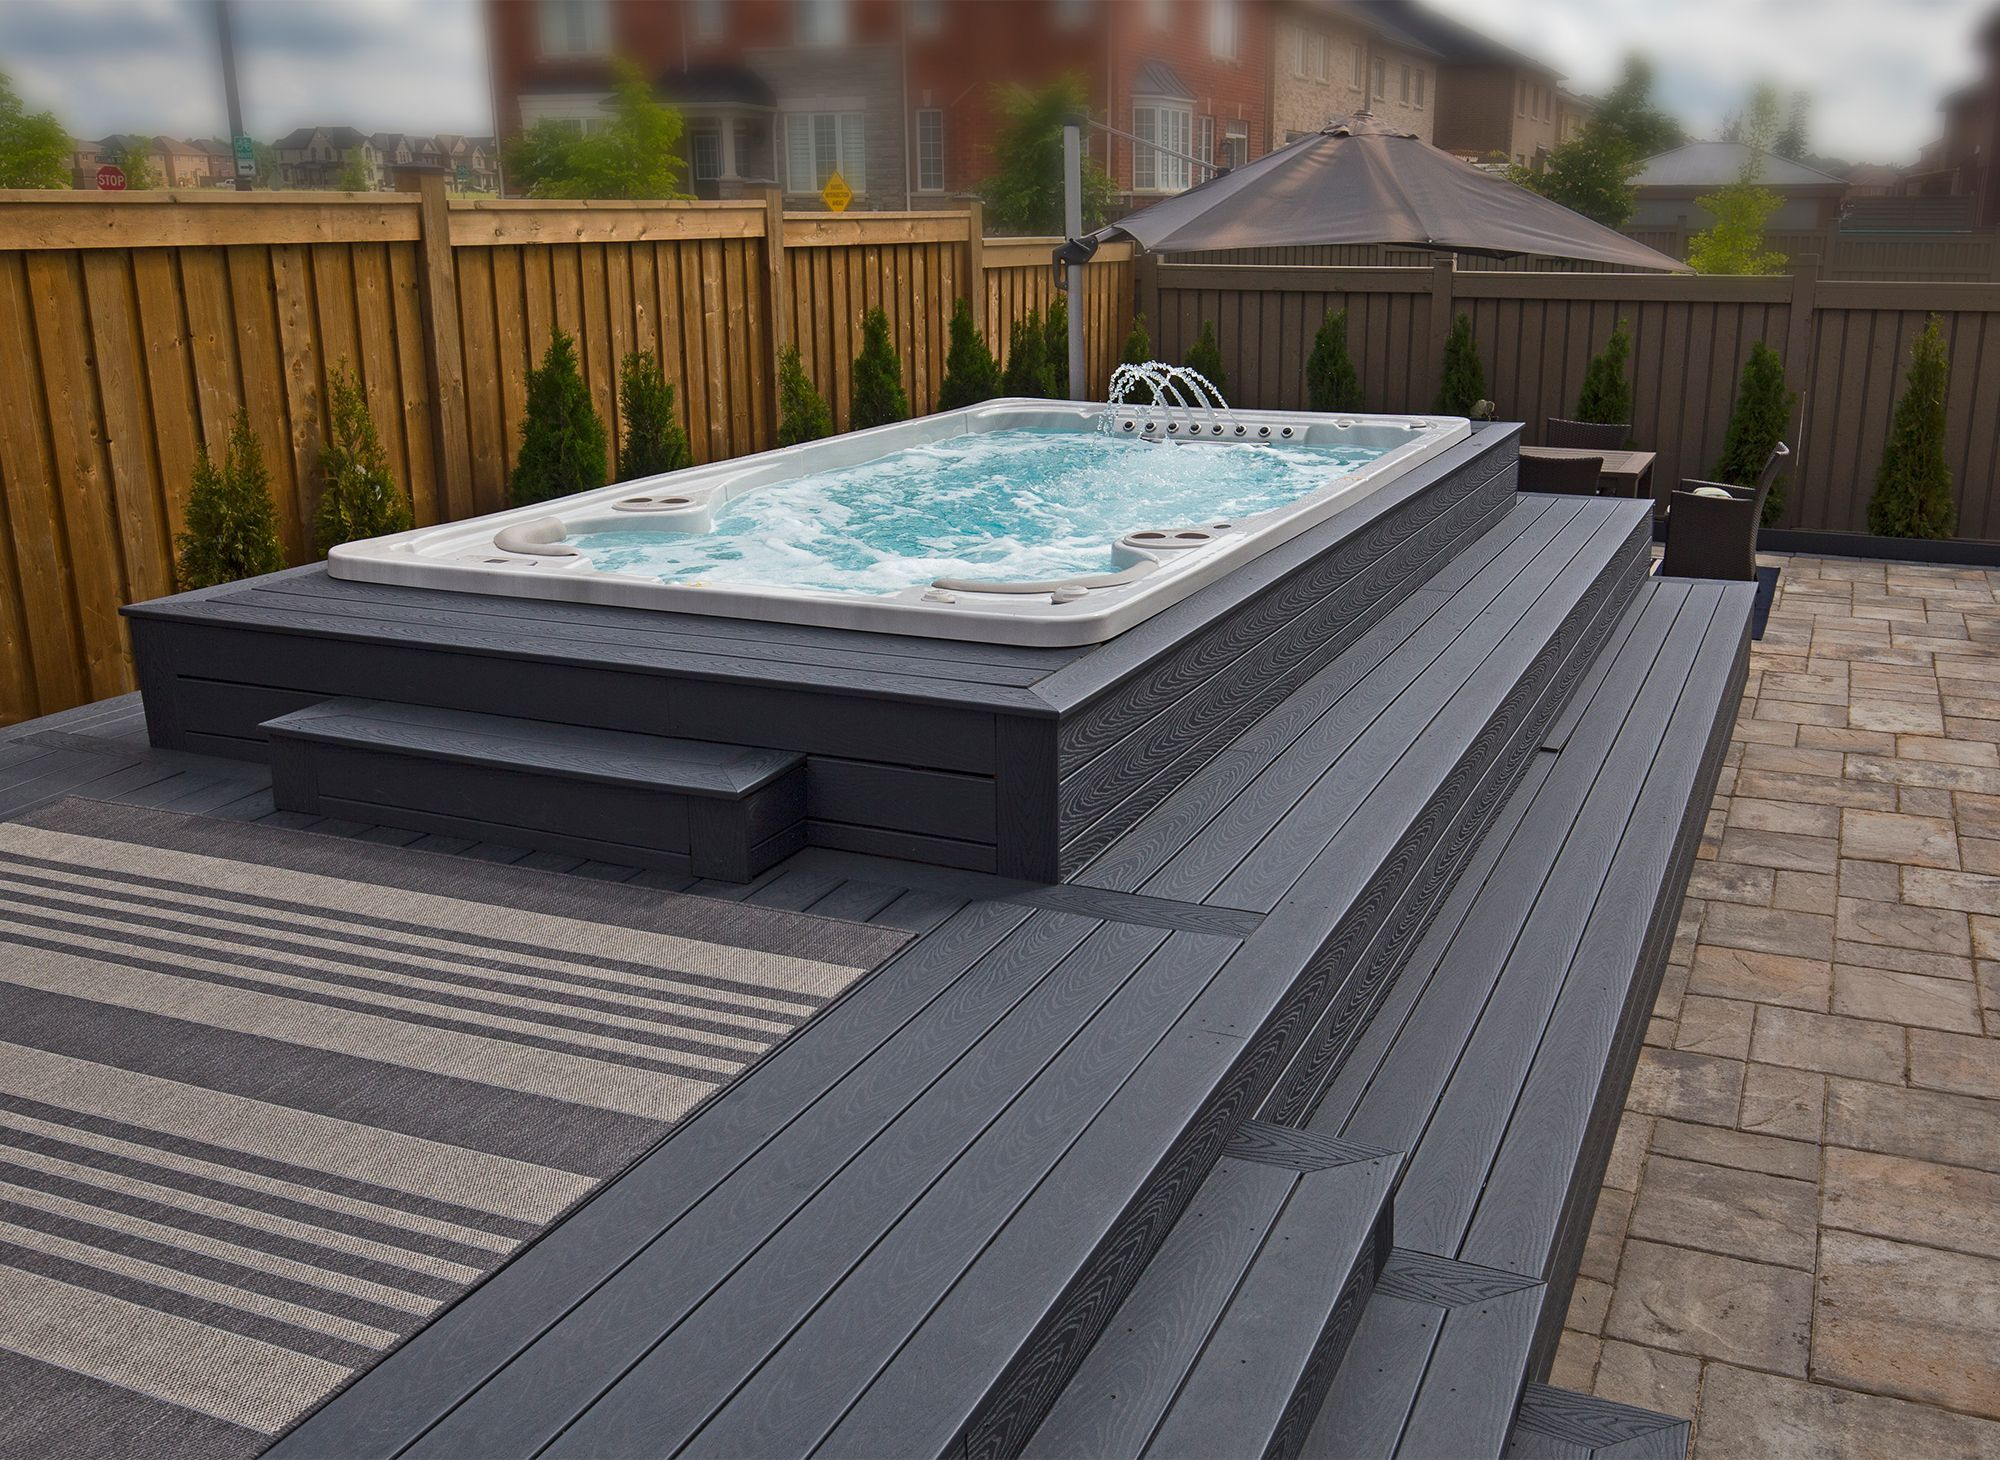 13 The Best Stone Outdoor Patio Suggestions Patiochairs Patiocovers Patiofurnitureclearanc Homemade Swimming Pools Swimming Pool Lights Swim Spa Landscaping